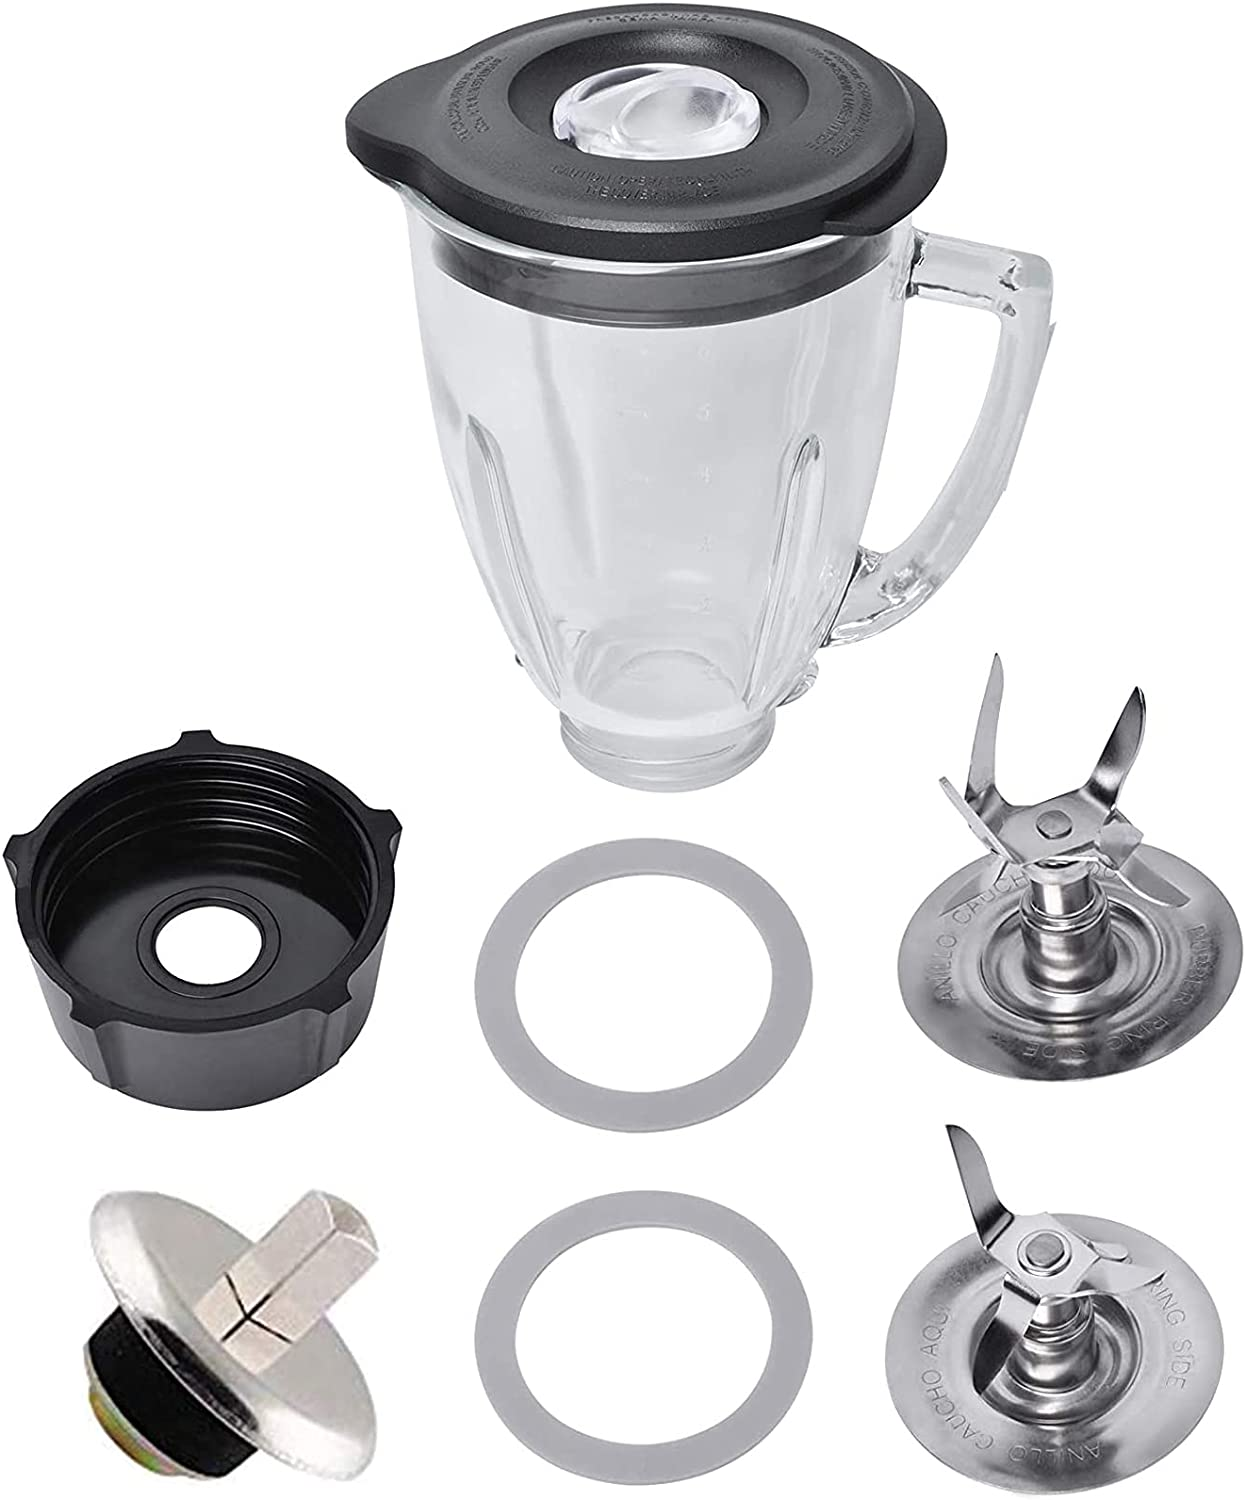 6 Cup Glass Jar Replacement for Oster and Osterizer Blender, with 4961, 4980 Ice Blade, 4902 Blender Jar Bottom Cap Base, Drive Coupling, Rubber Seal Rings Accessory Kit